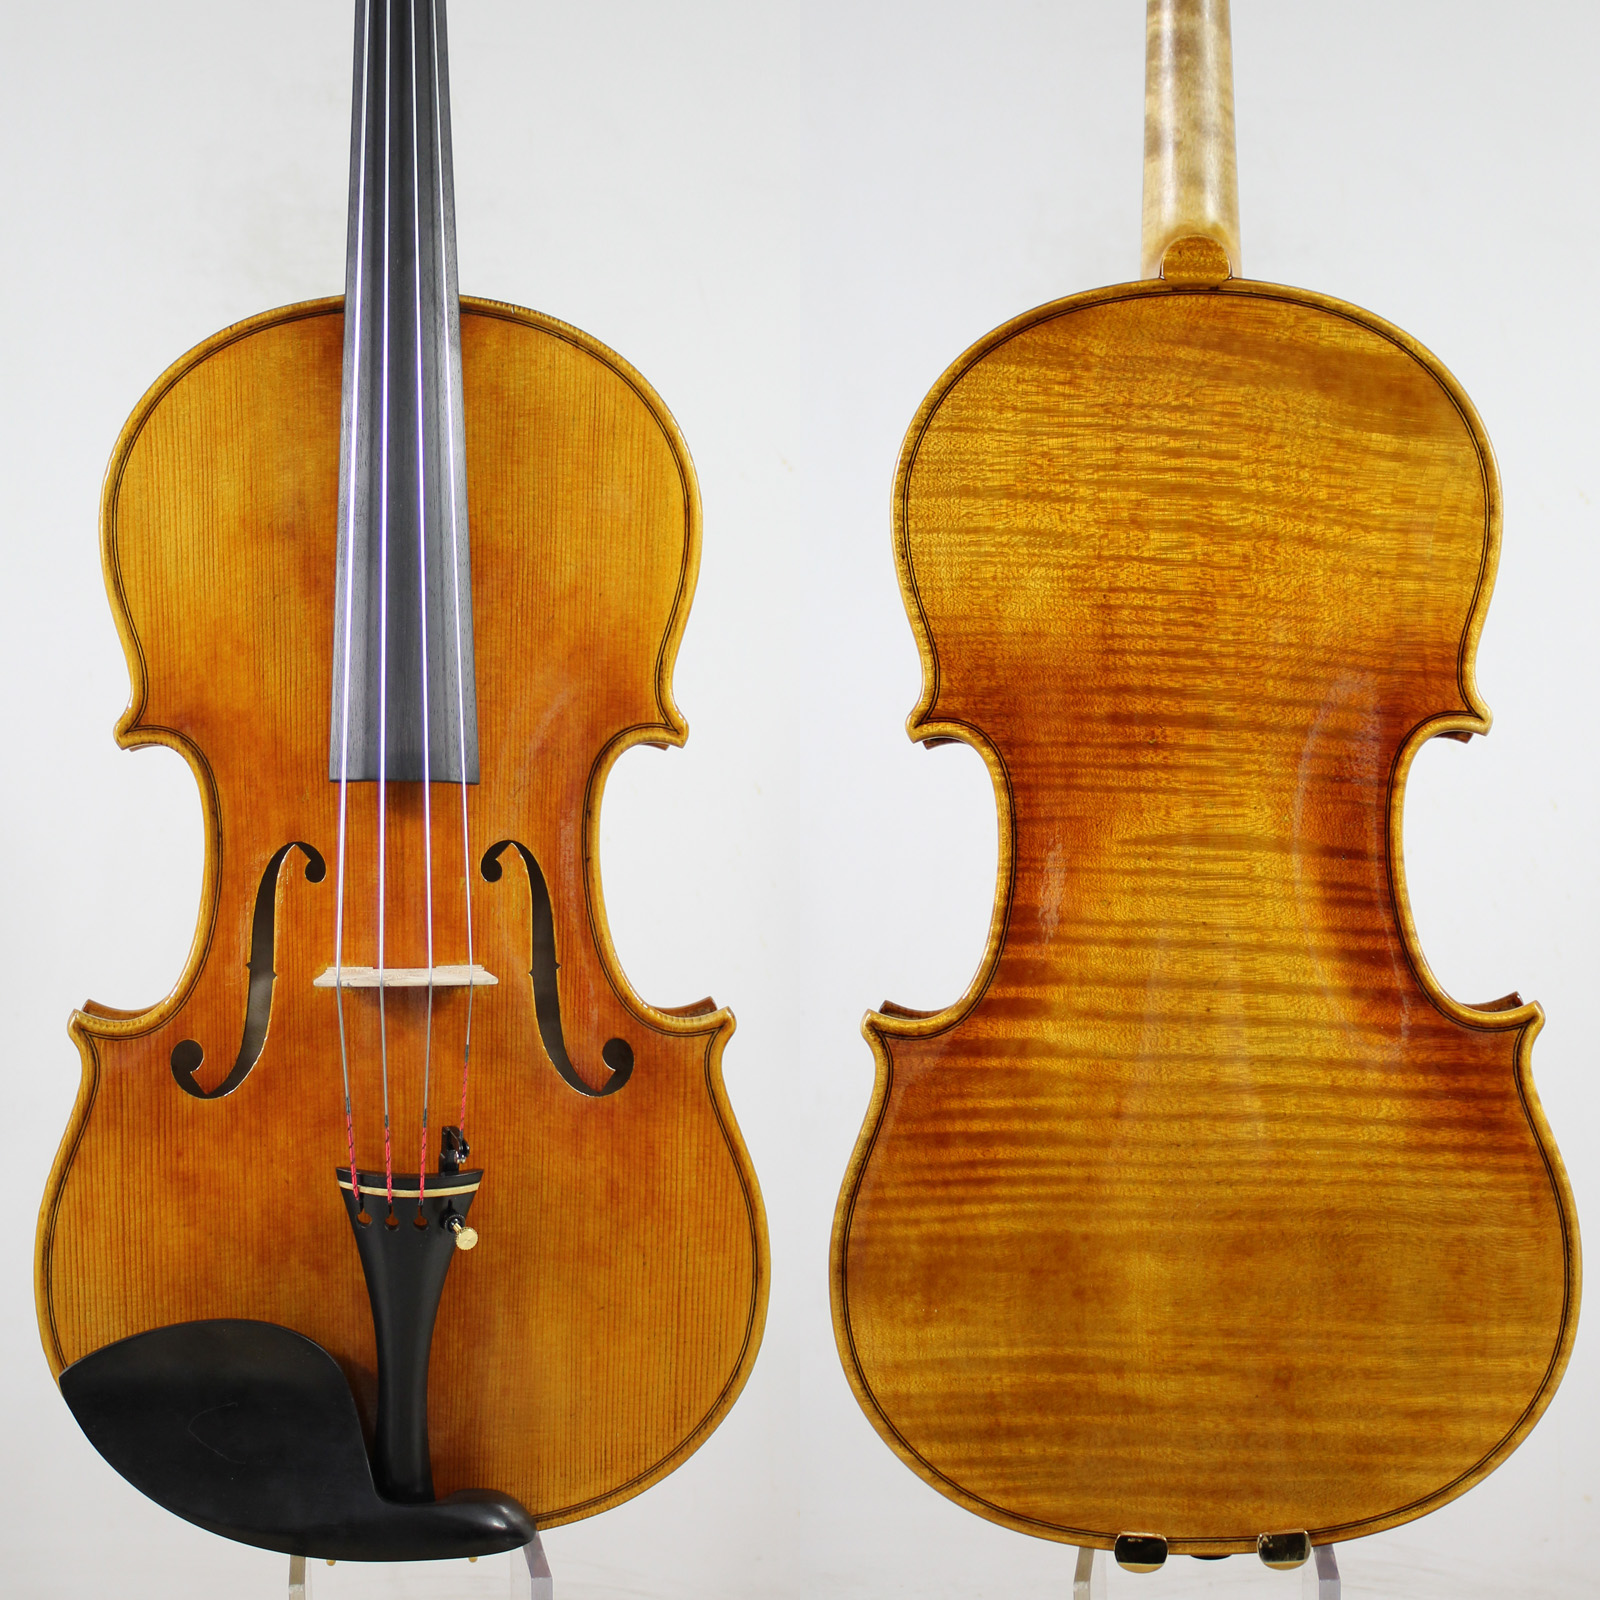 1 PC Back! A Strad Viola Copy,15inch 15.5inch Master Performance! Warm Deep Tone! Free Shipping And Bow Case! European Spruce!